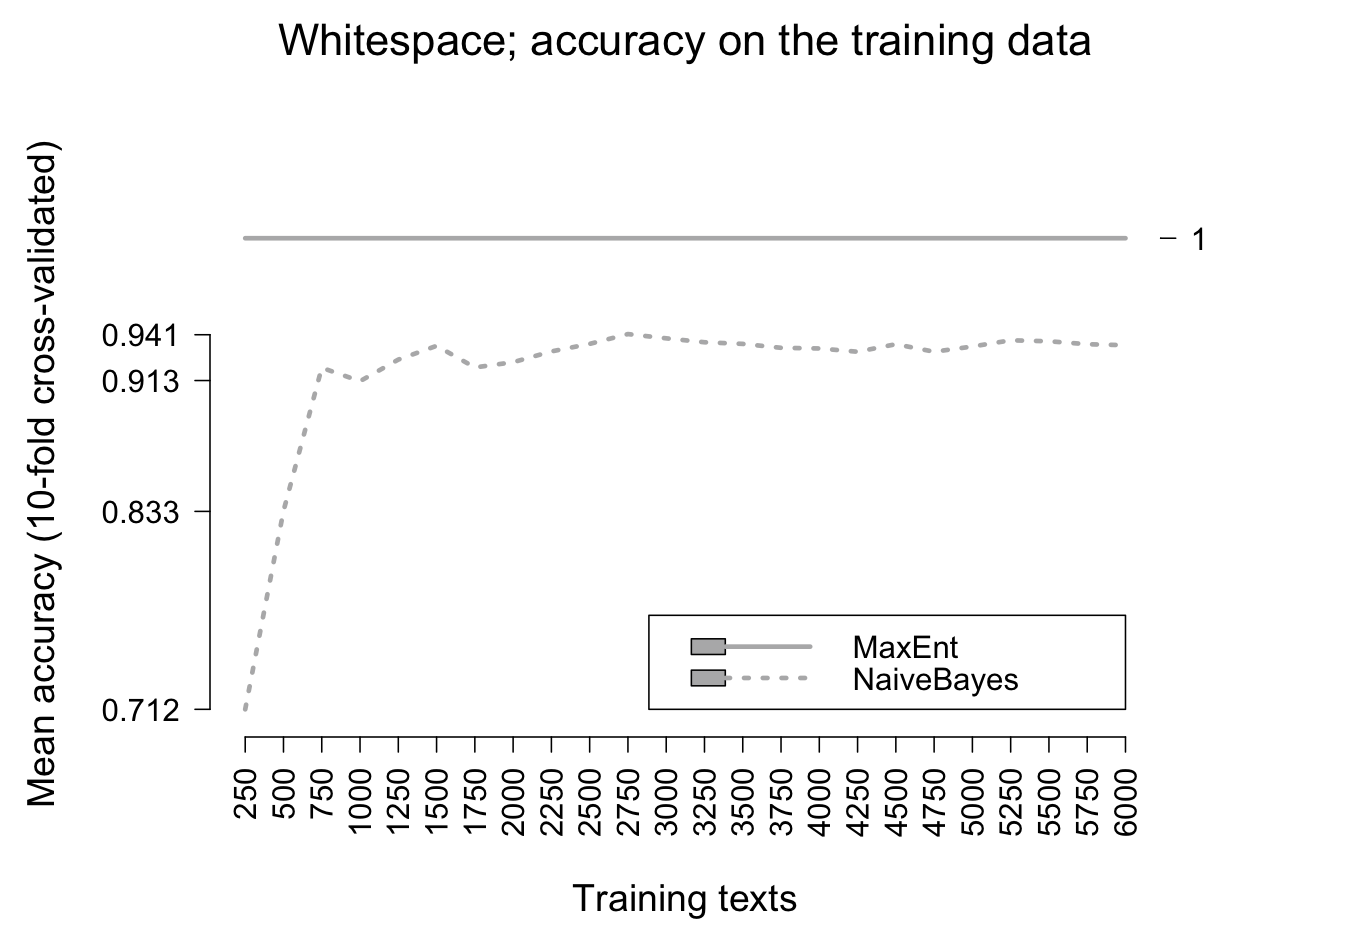 figures/traineval-opentable-whitespace.png